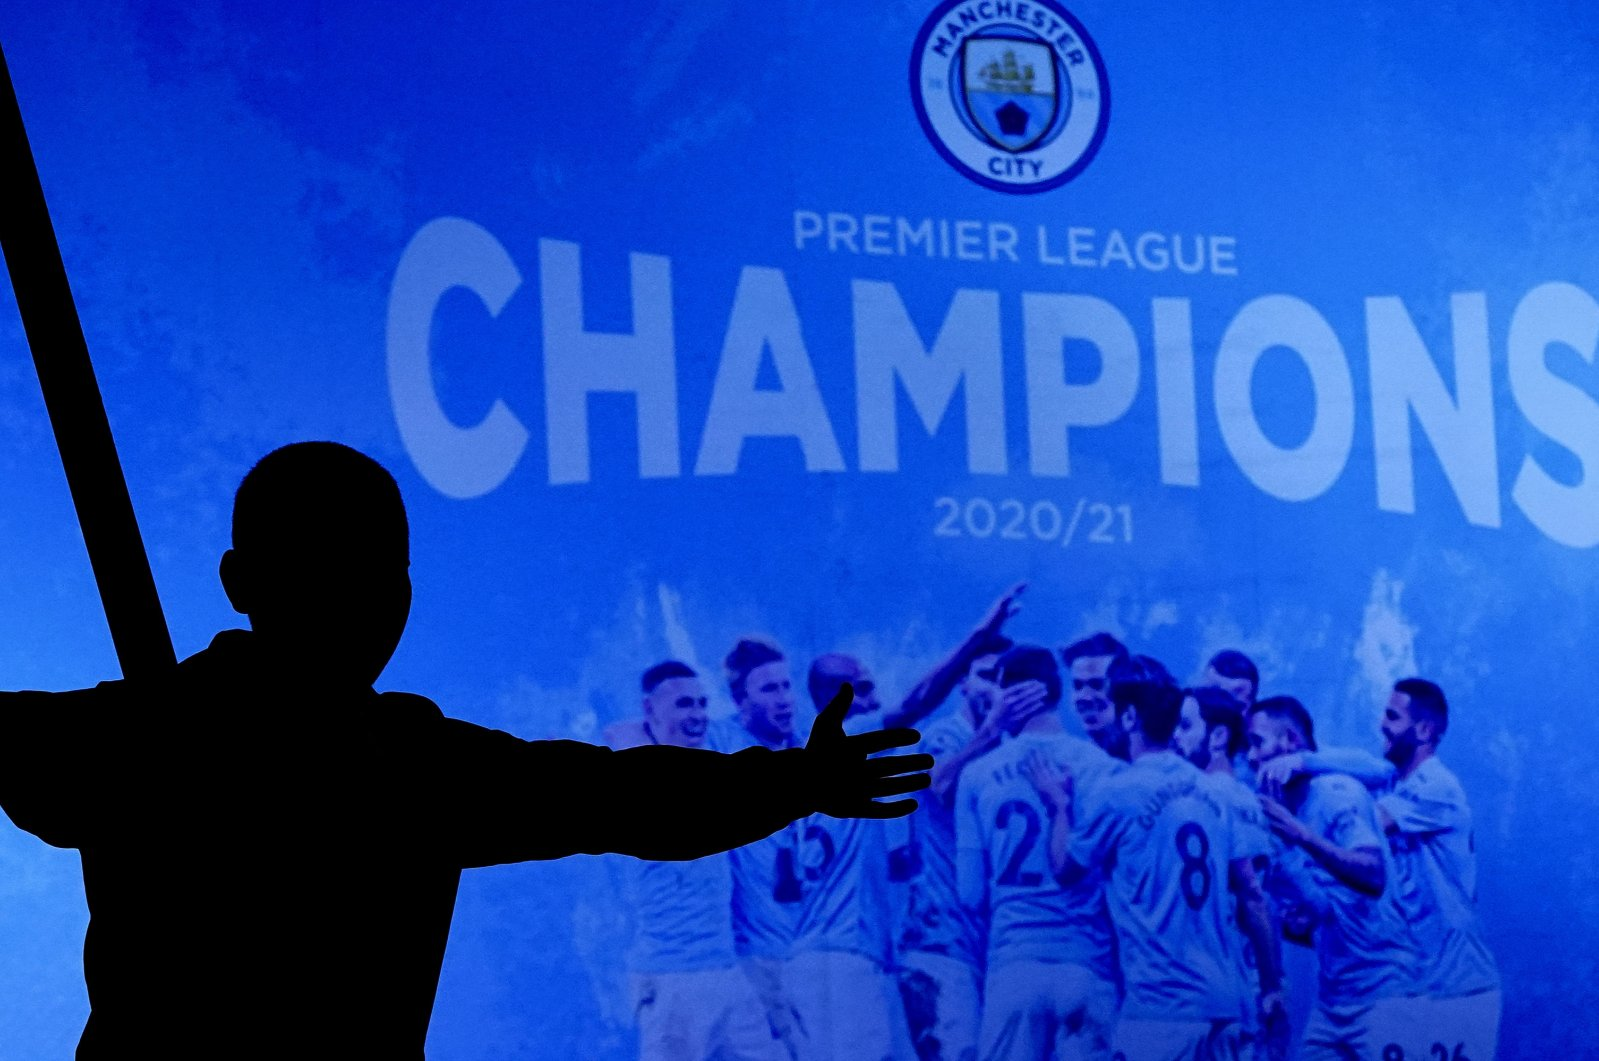 A Manchester City supporter celebrates outside the Etihad Stadium after his team clinched the English Premier League title, Manchester, England, May 11, 2021. (AP Photo)